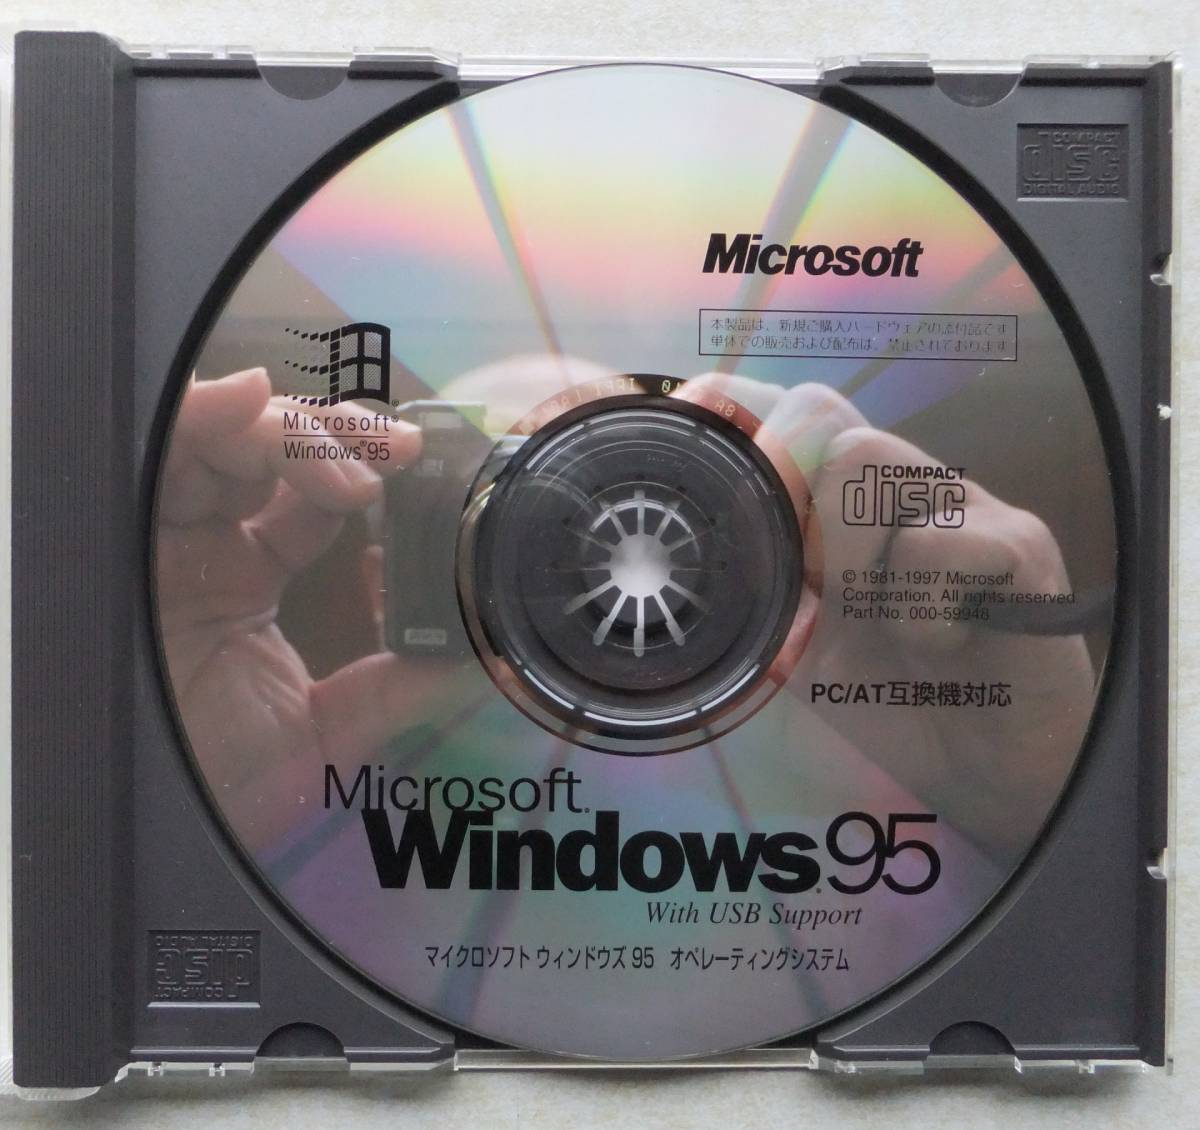 Microsoft Windows95 With USB Support PC/AT互助機対応